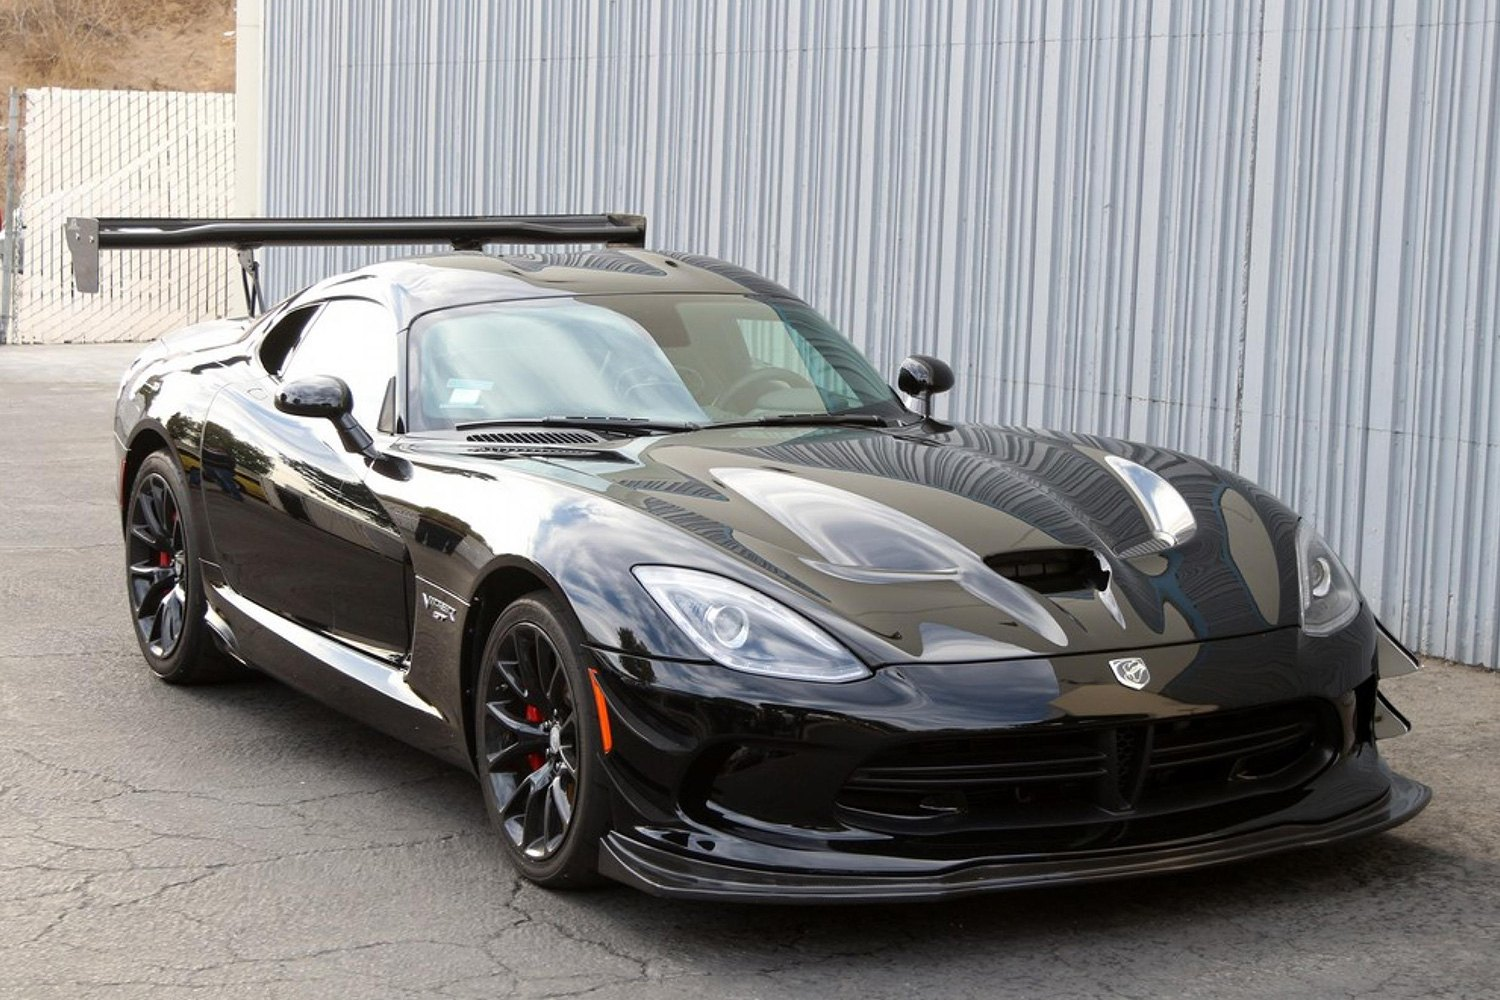 Dodge Viper SRT Anodized Carbon Special Edition |Viper With Spoiler